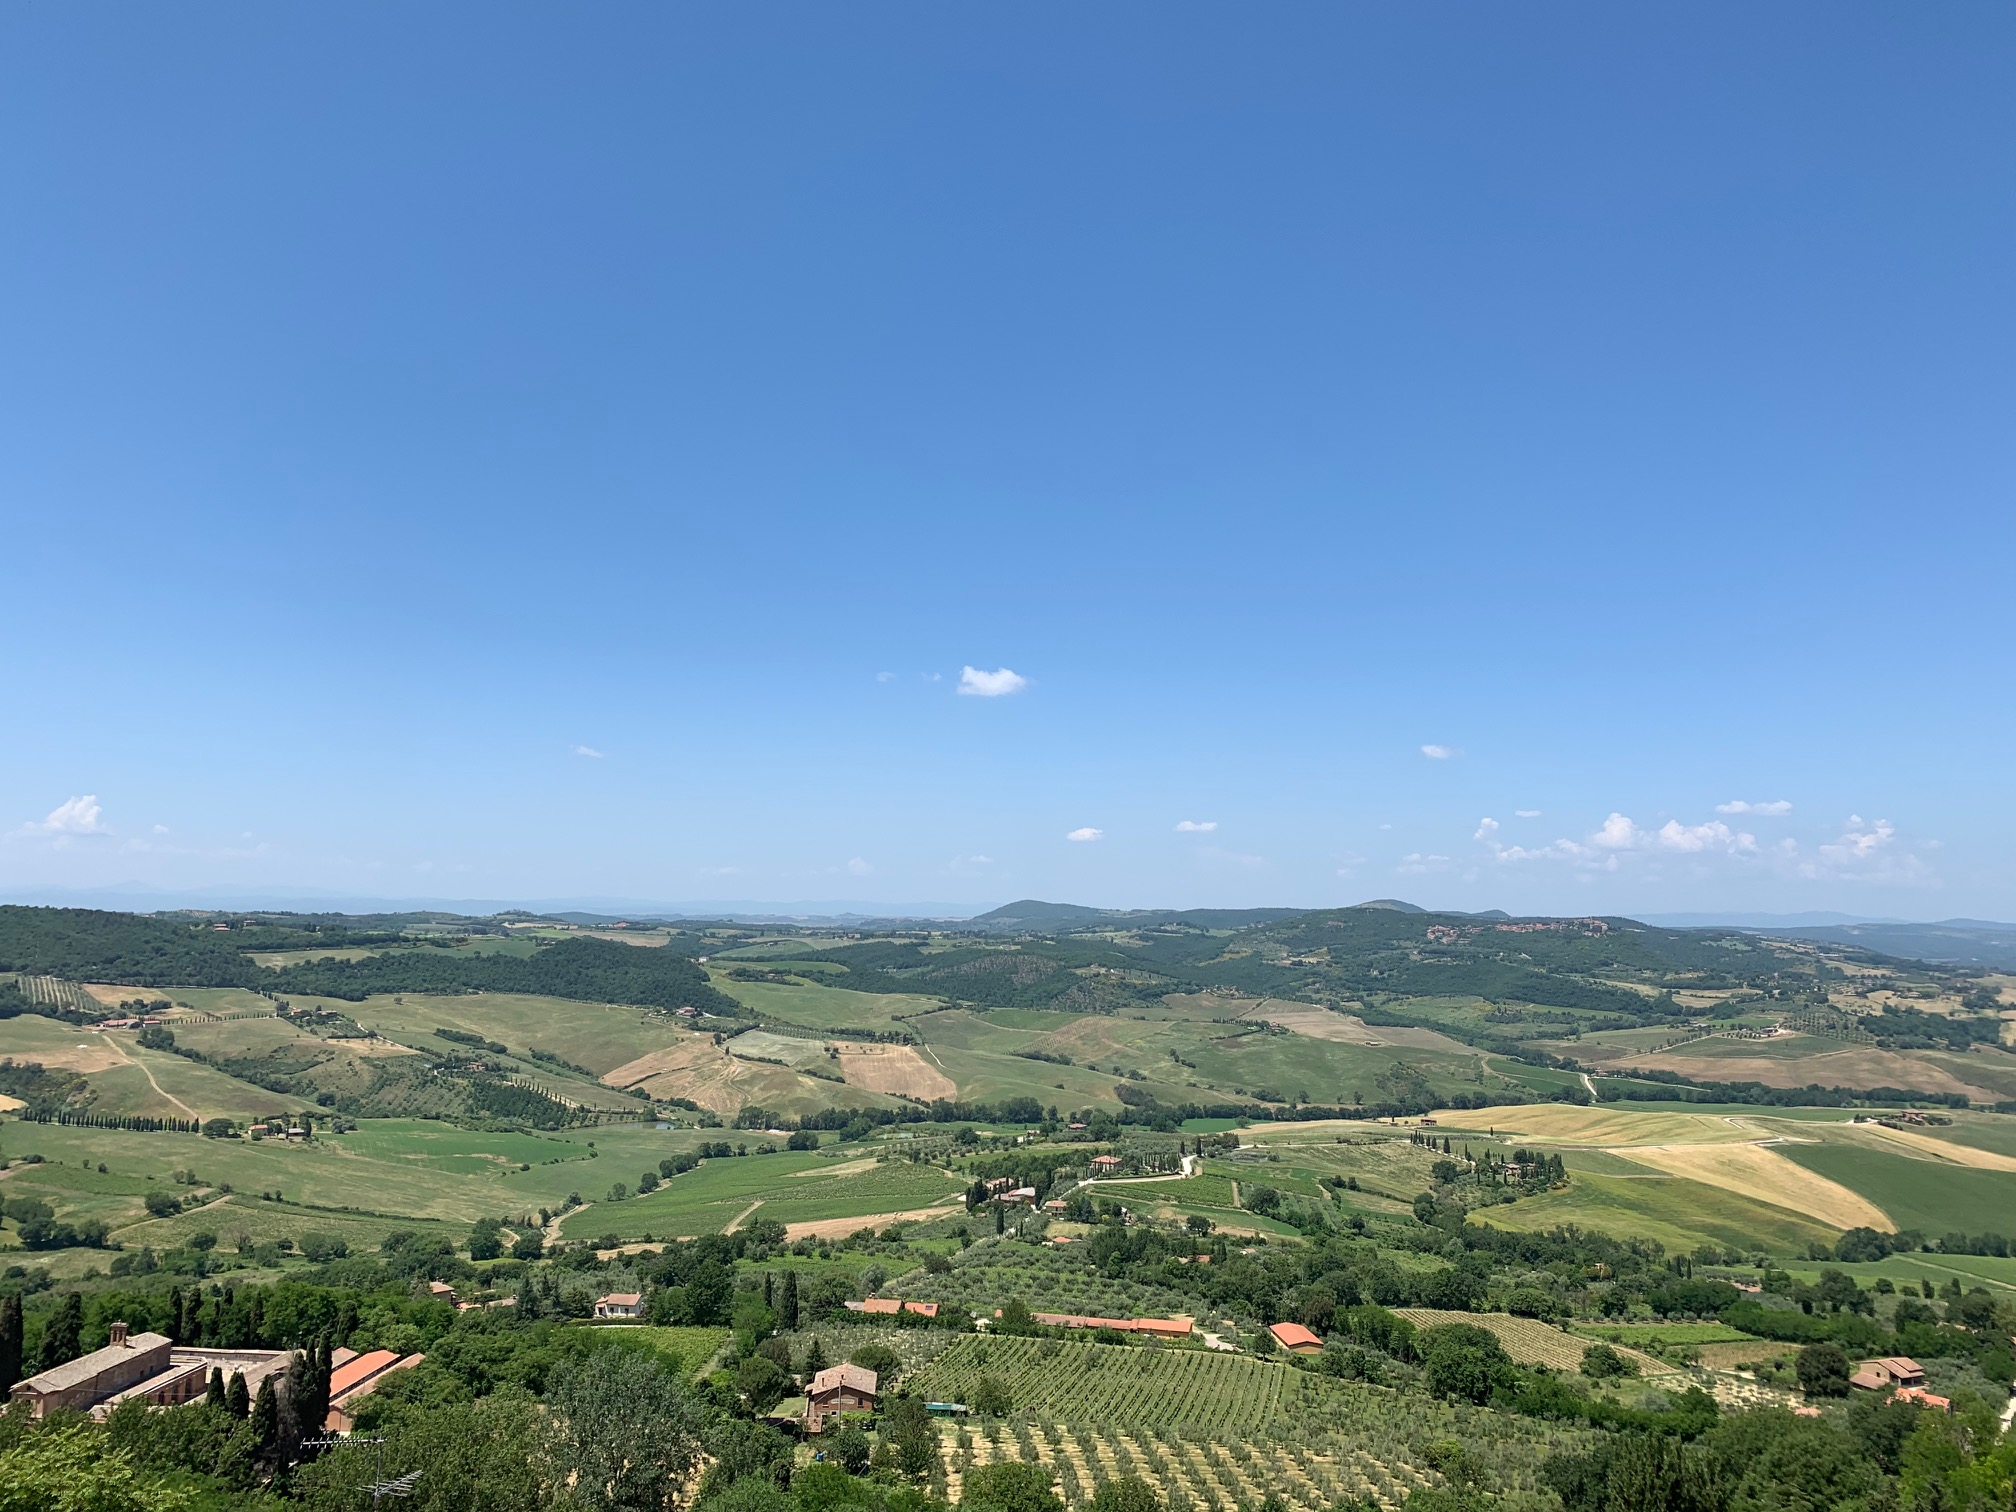 Two weeks in Umbria, Italy